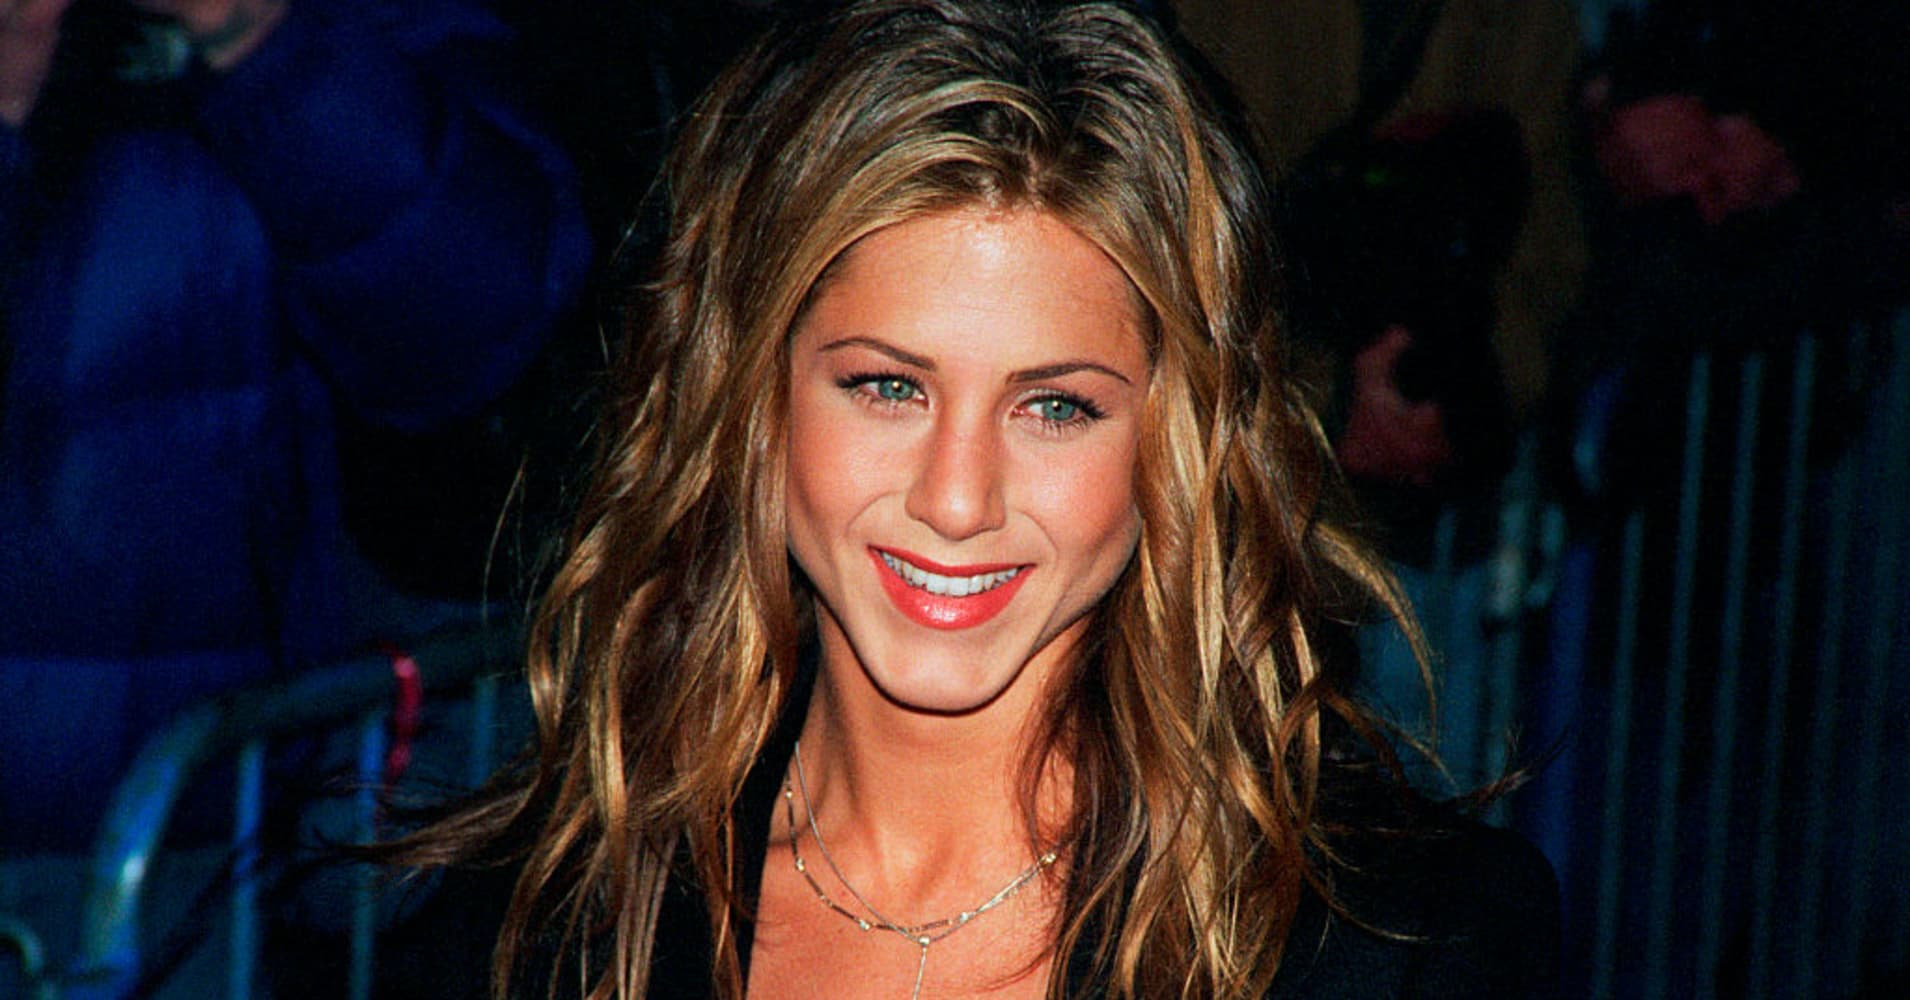 The First Jobs Of Jennifer Aniston Jeff Bezos And Other Celebs